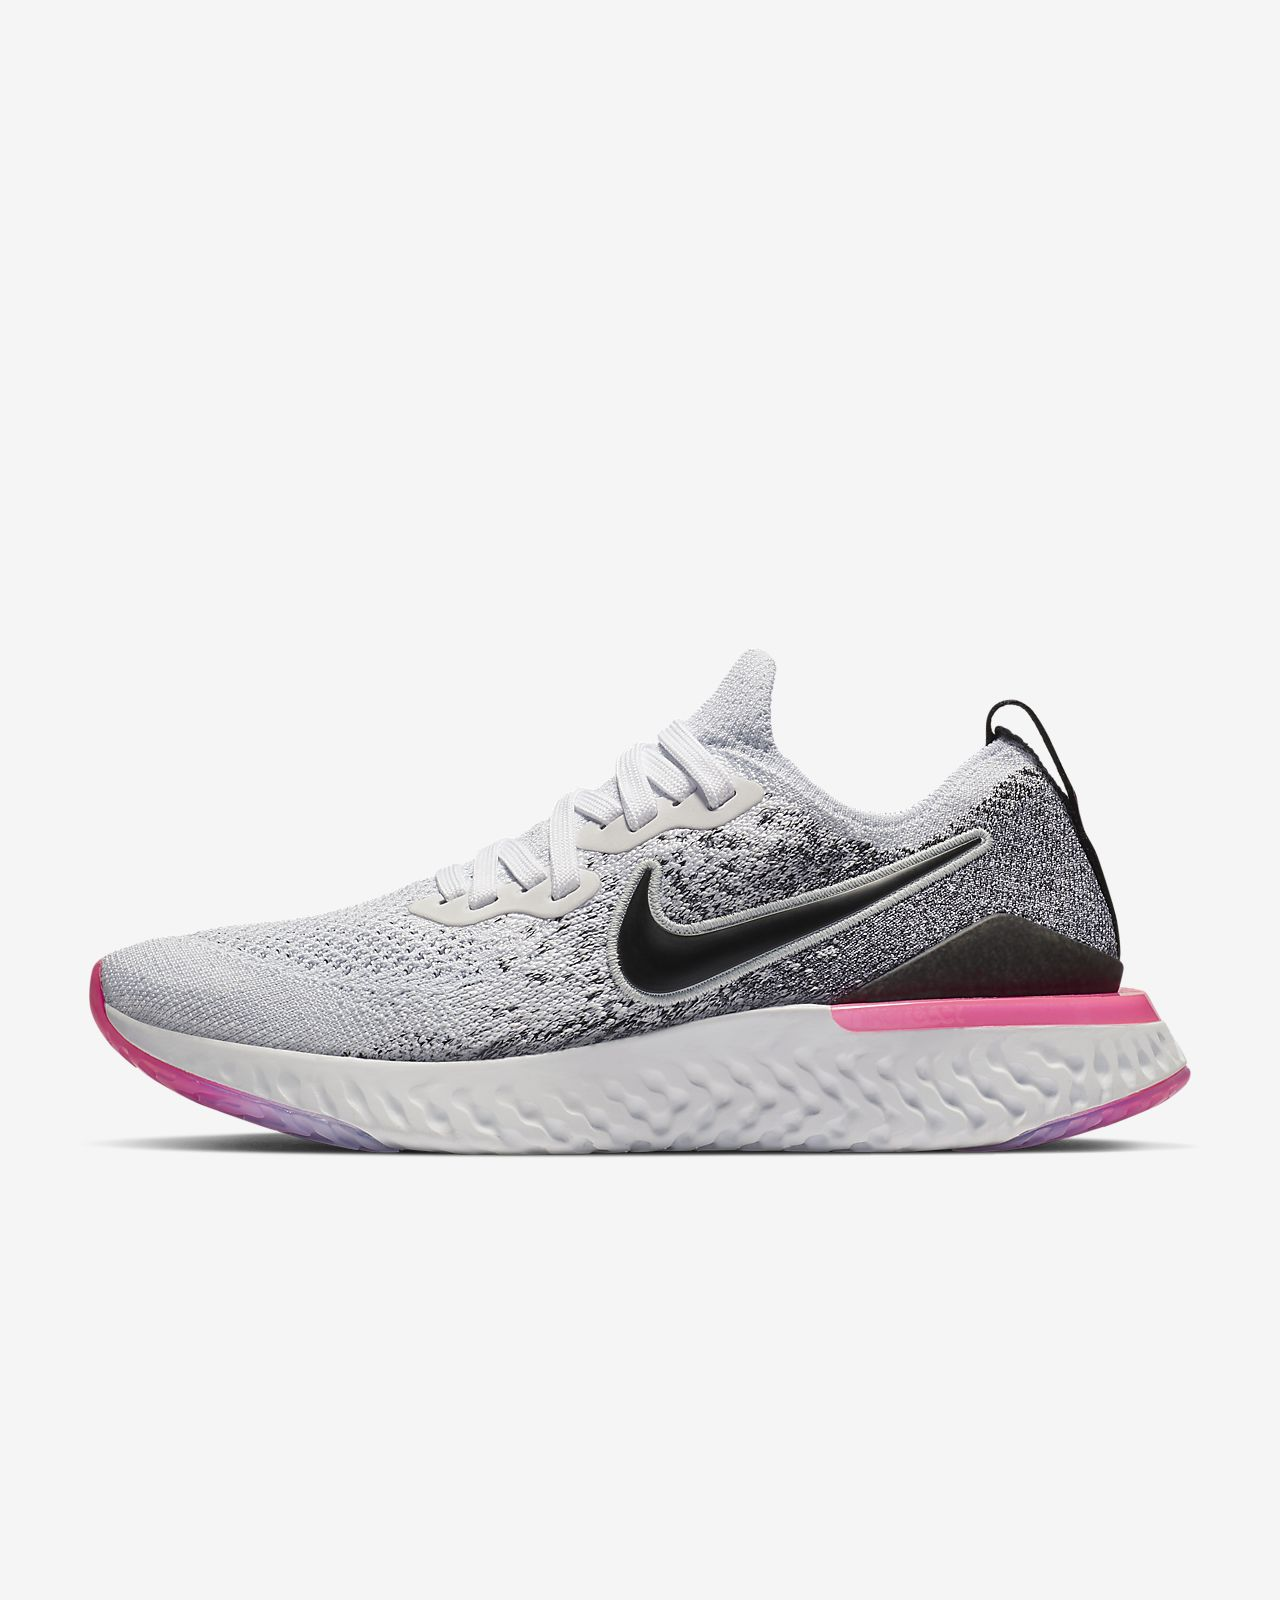 b5a08509953 Nike Epic React Flyknit 2 Women's Running Shoe